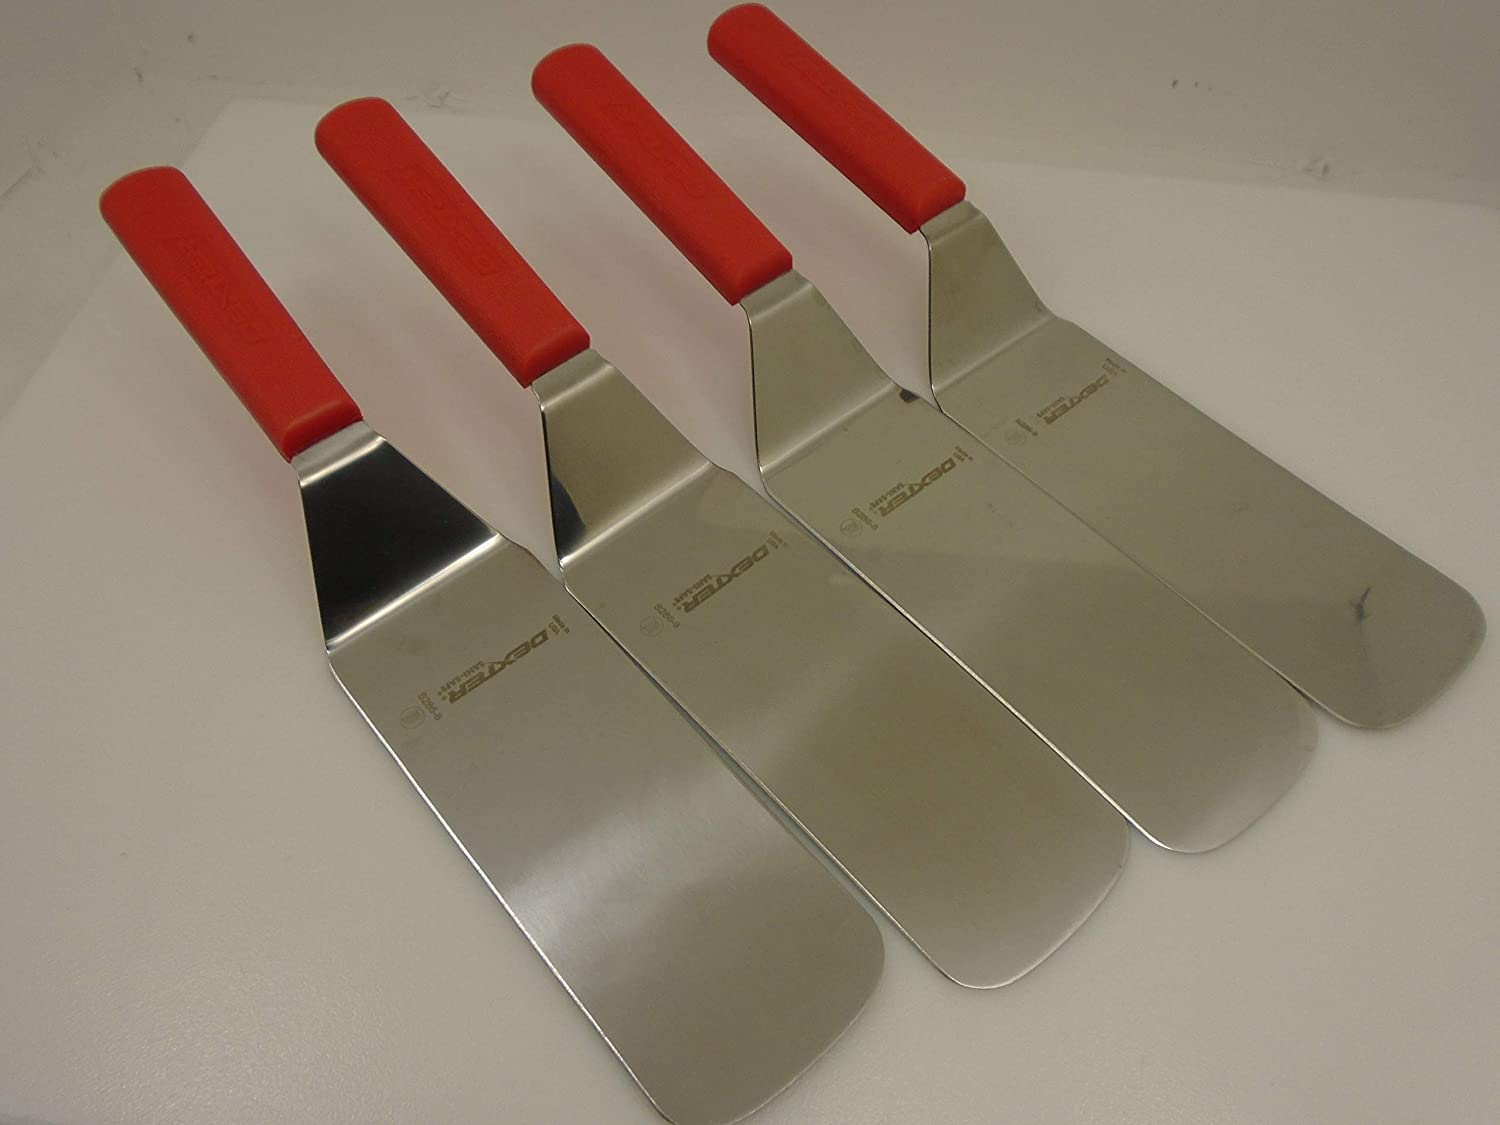 Dexter USA Lot of 4 Red Spatulas Handles 8x3 S286-8 Bombing Al sold out. new work Turners Bl